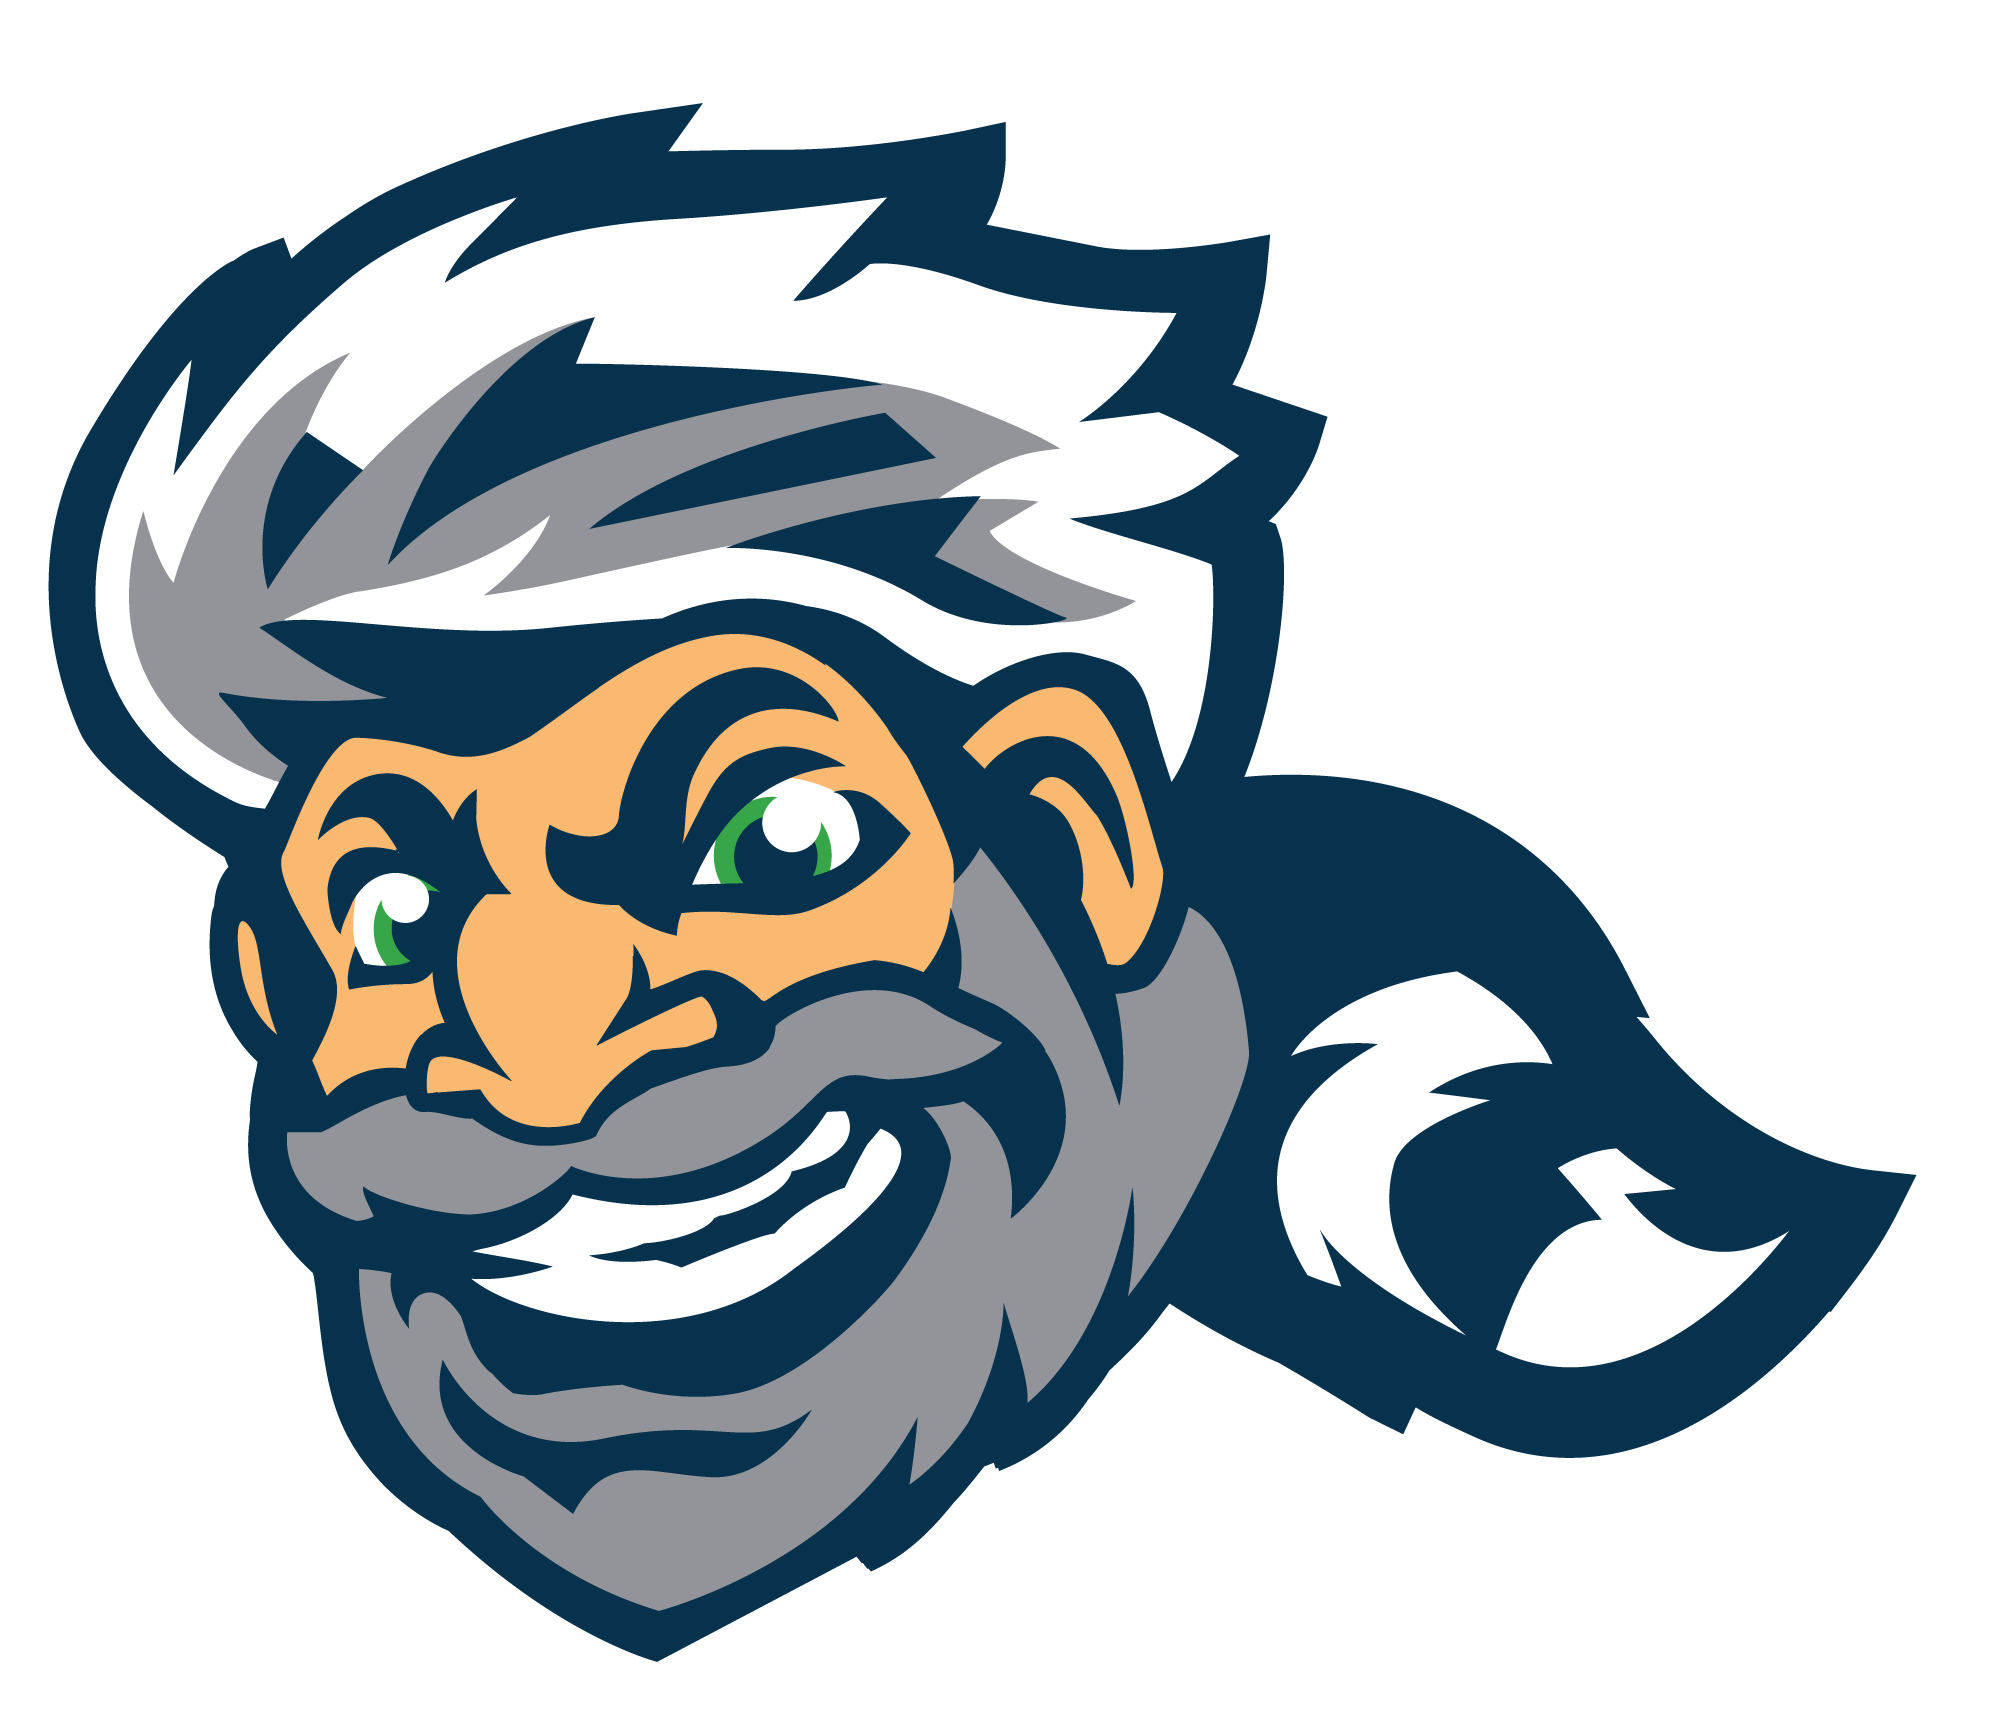 Private Elementary School - Mountaineer Mascot